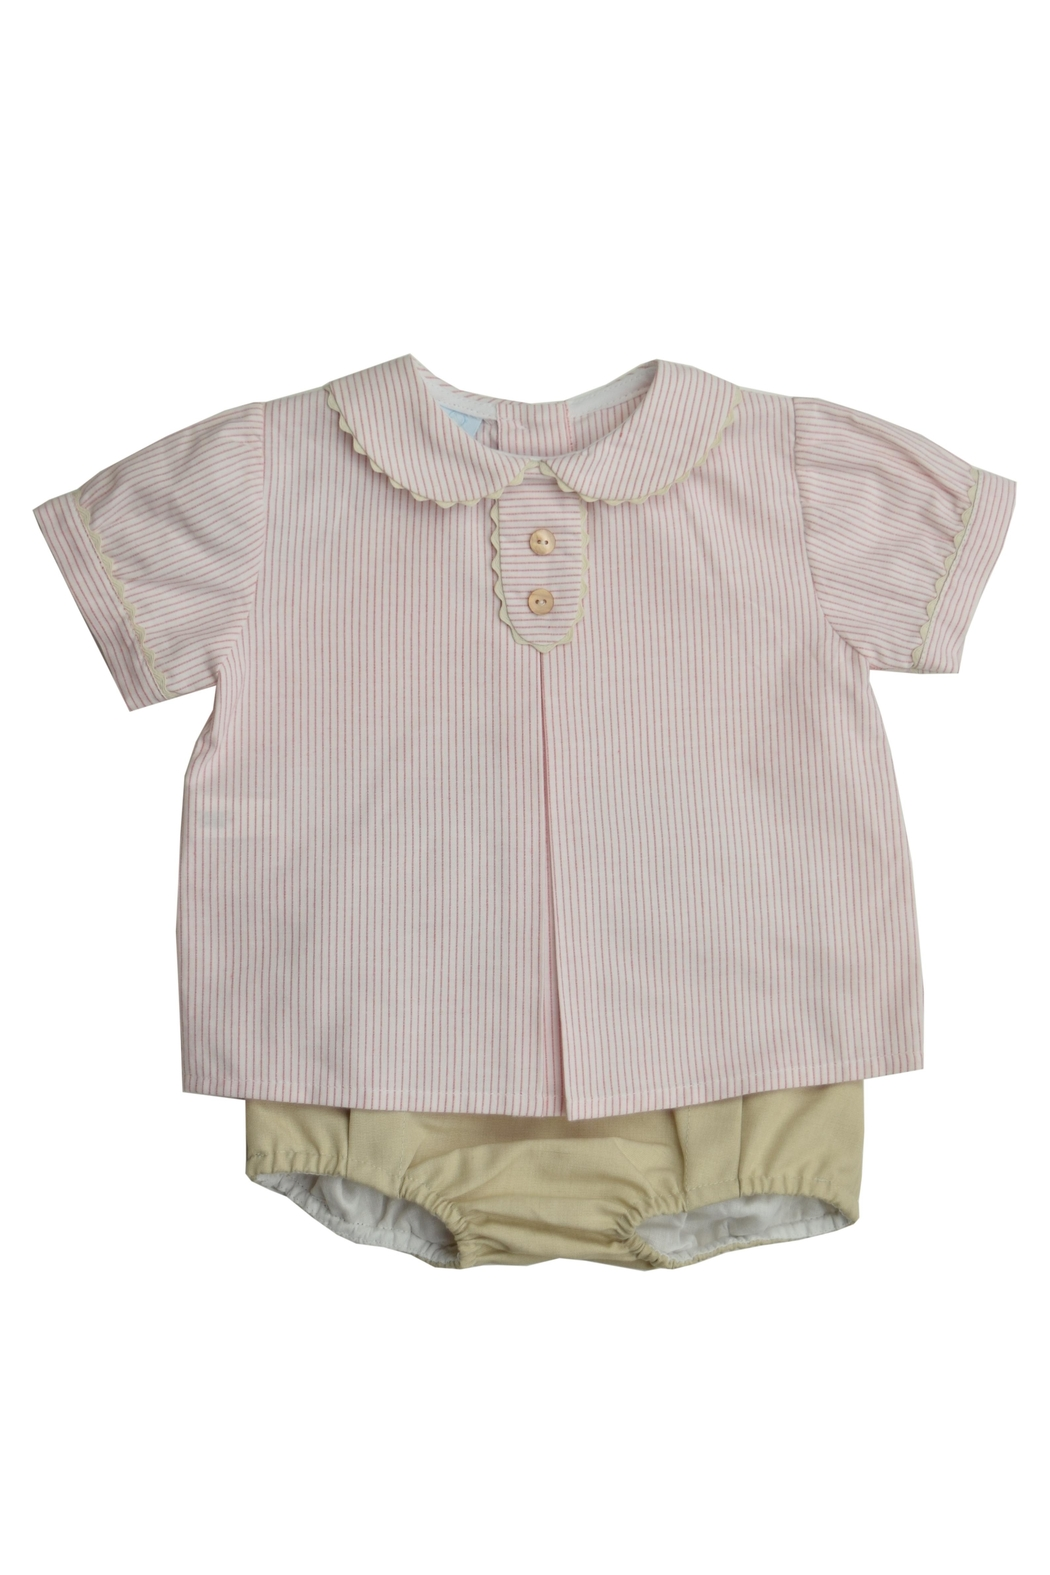 Granlei 1980 Striped Shorts Set - Main Image